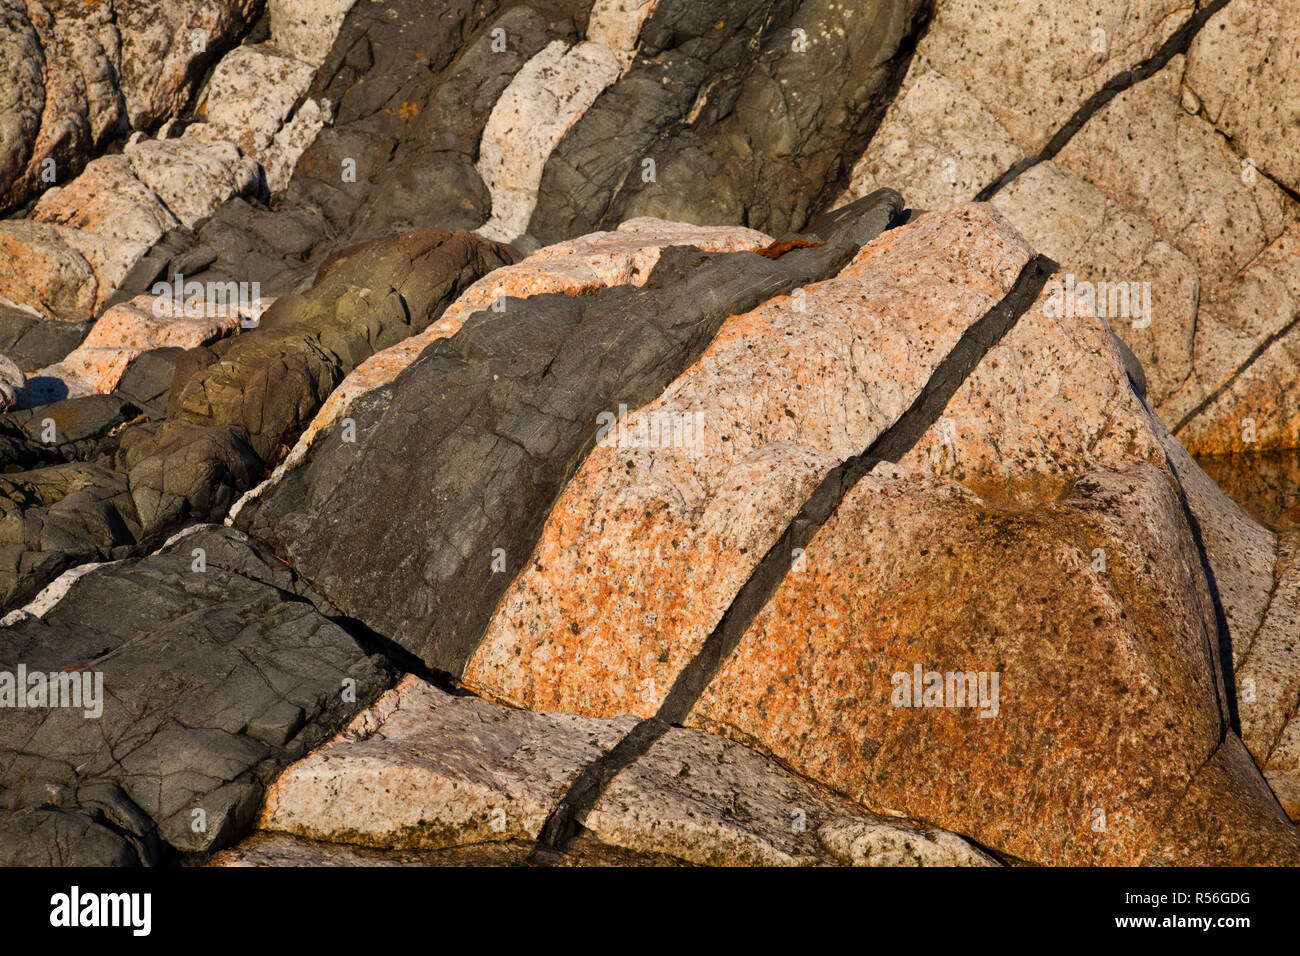 Diabase dike intrusion, Browning Beach, Sechelt, British Columbia, Canada Stock Photo